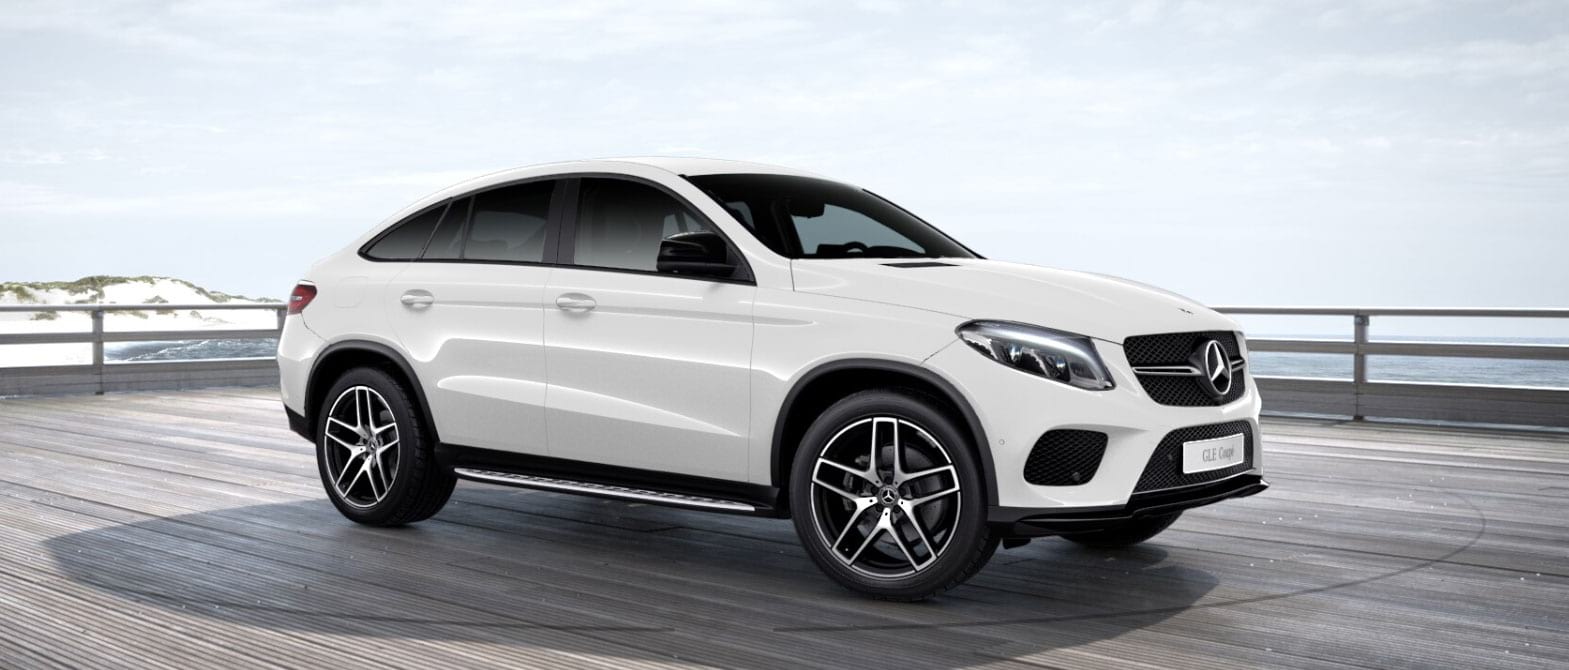 Mercedes-Benz GLE Coupe 0852611379